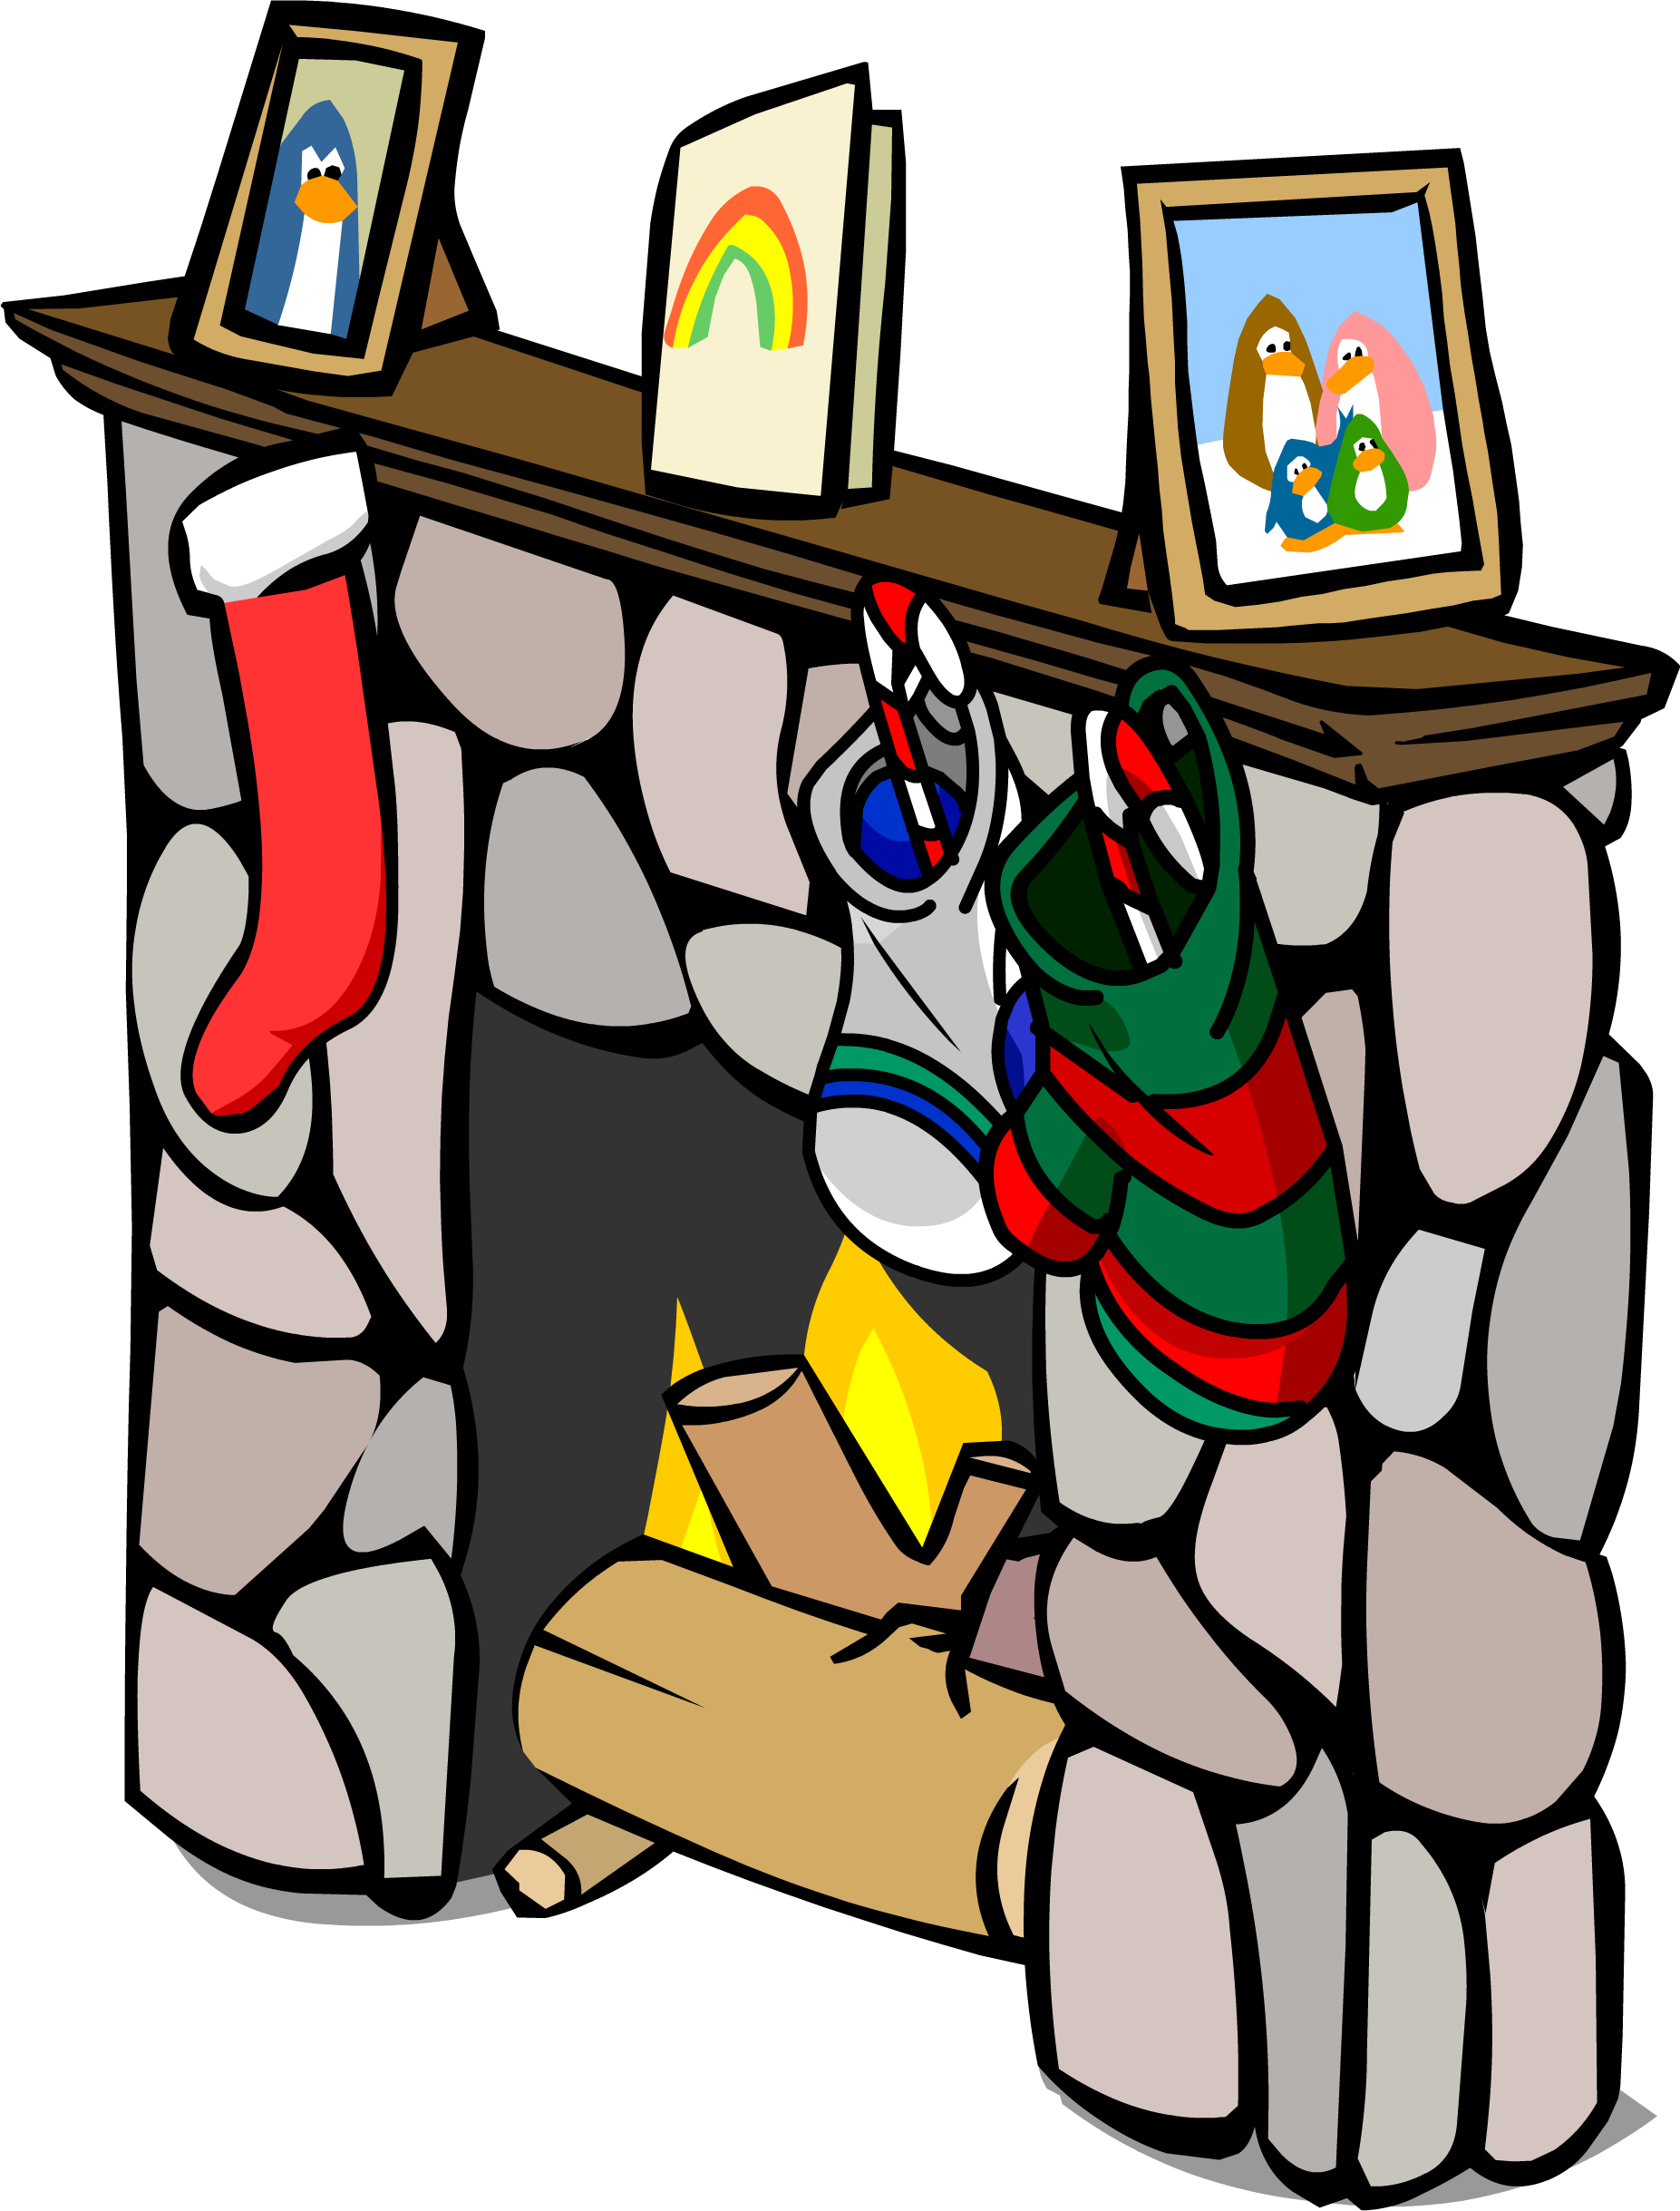 image fireplace sprite 018 png club penguin wiki fandom